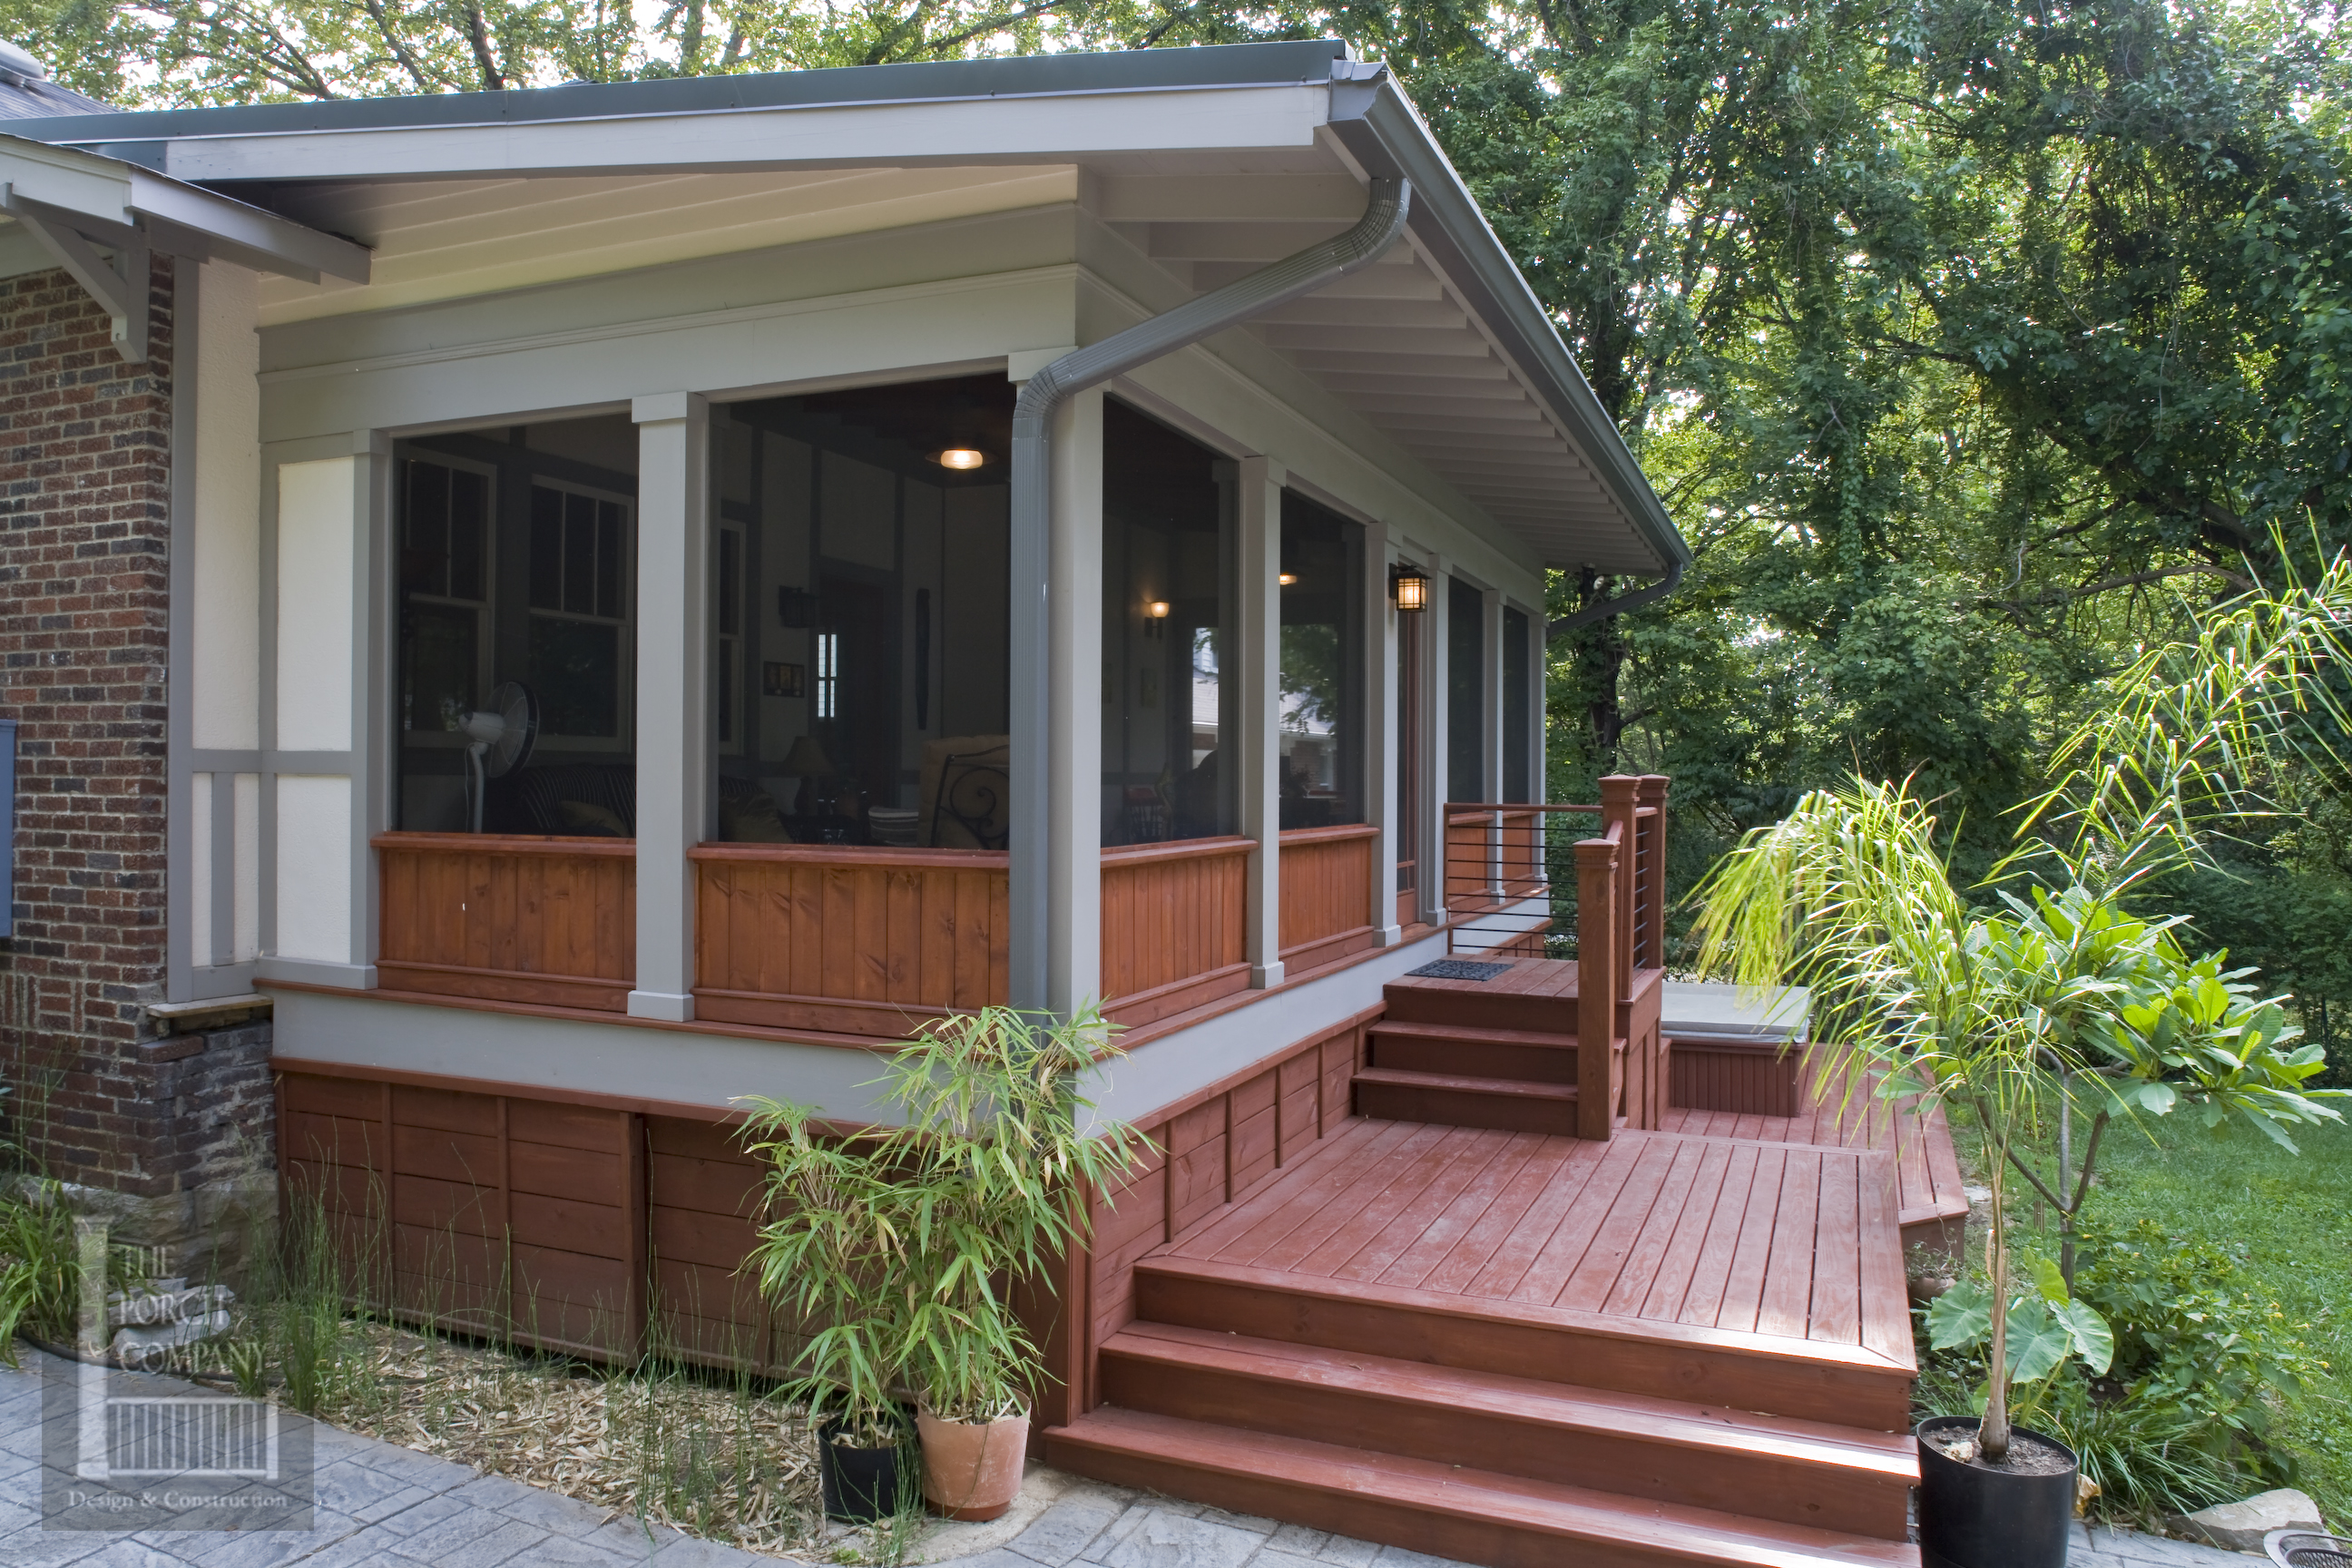 Back porch roof ideas - Shed Roof By The Porch Company